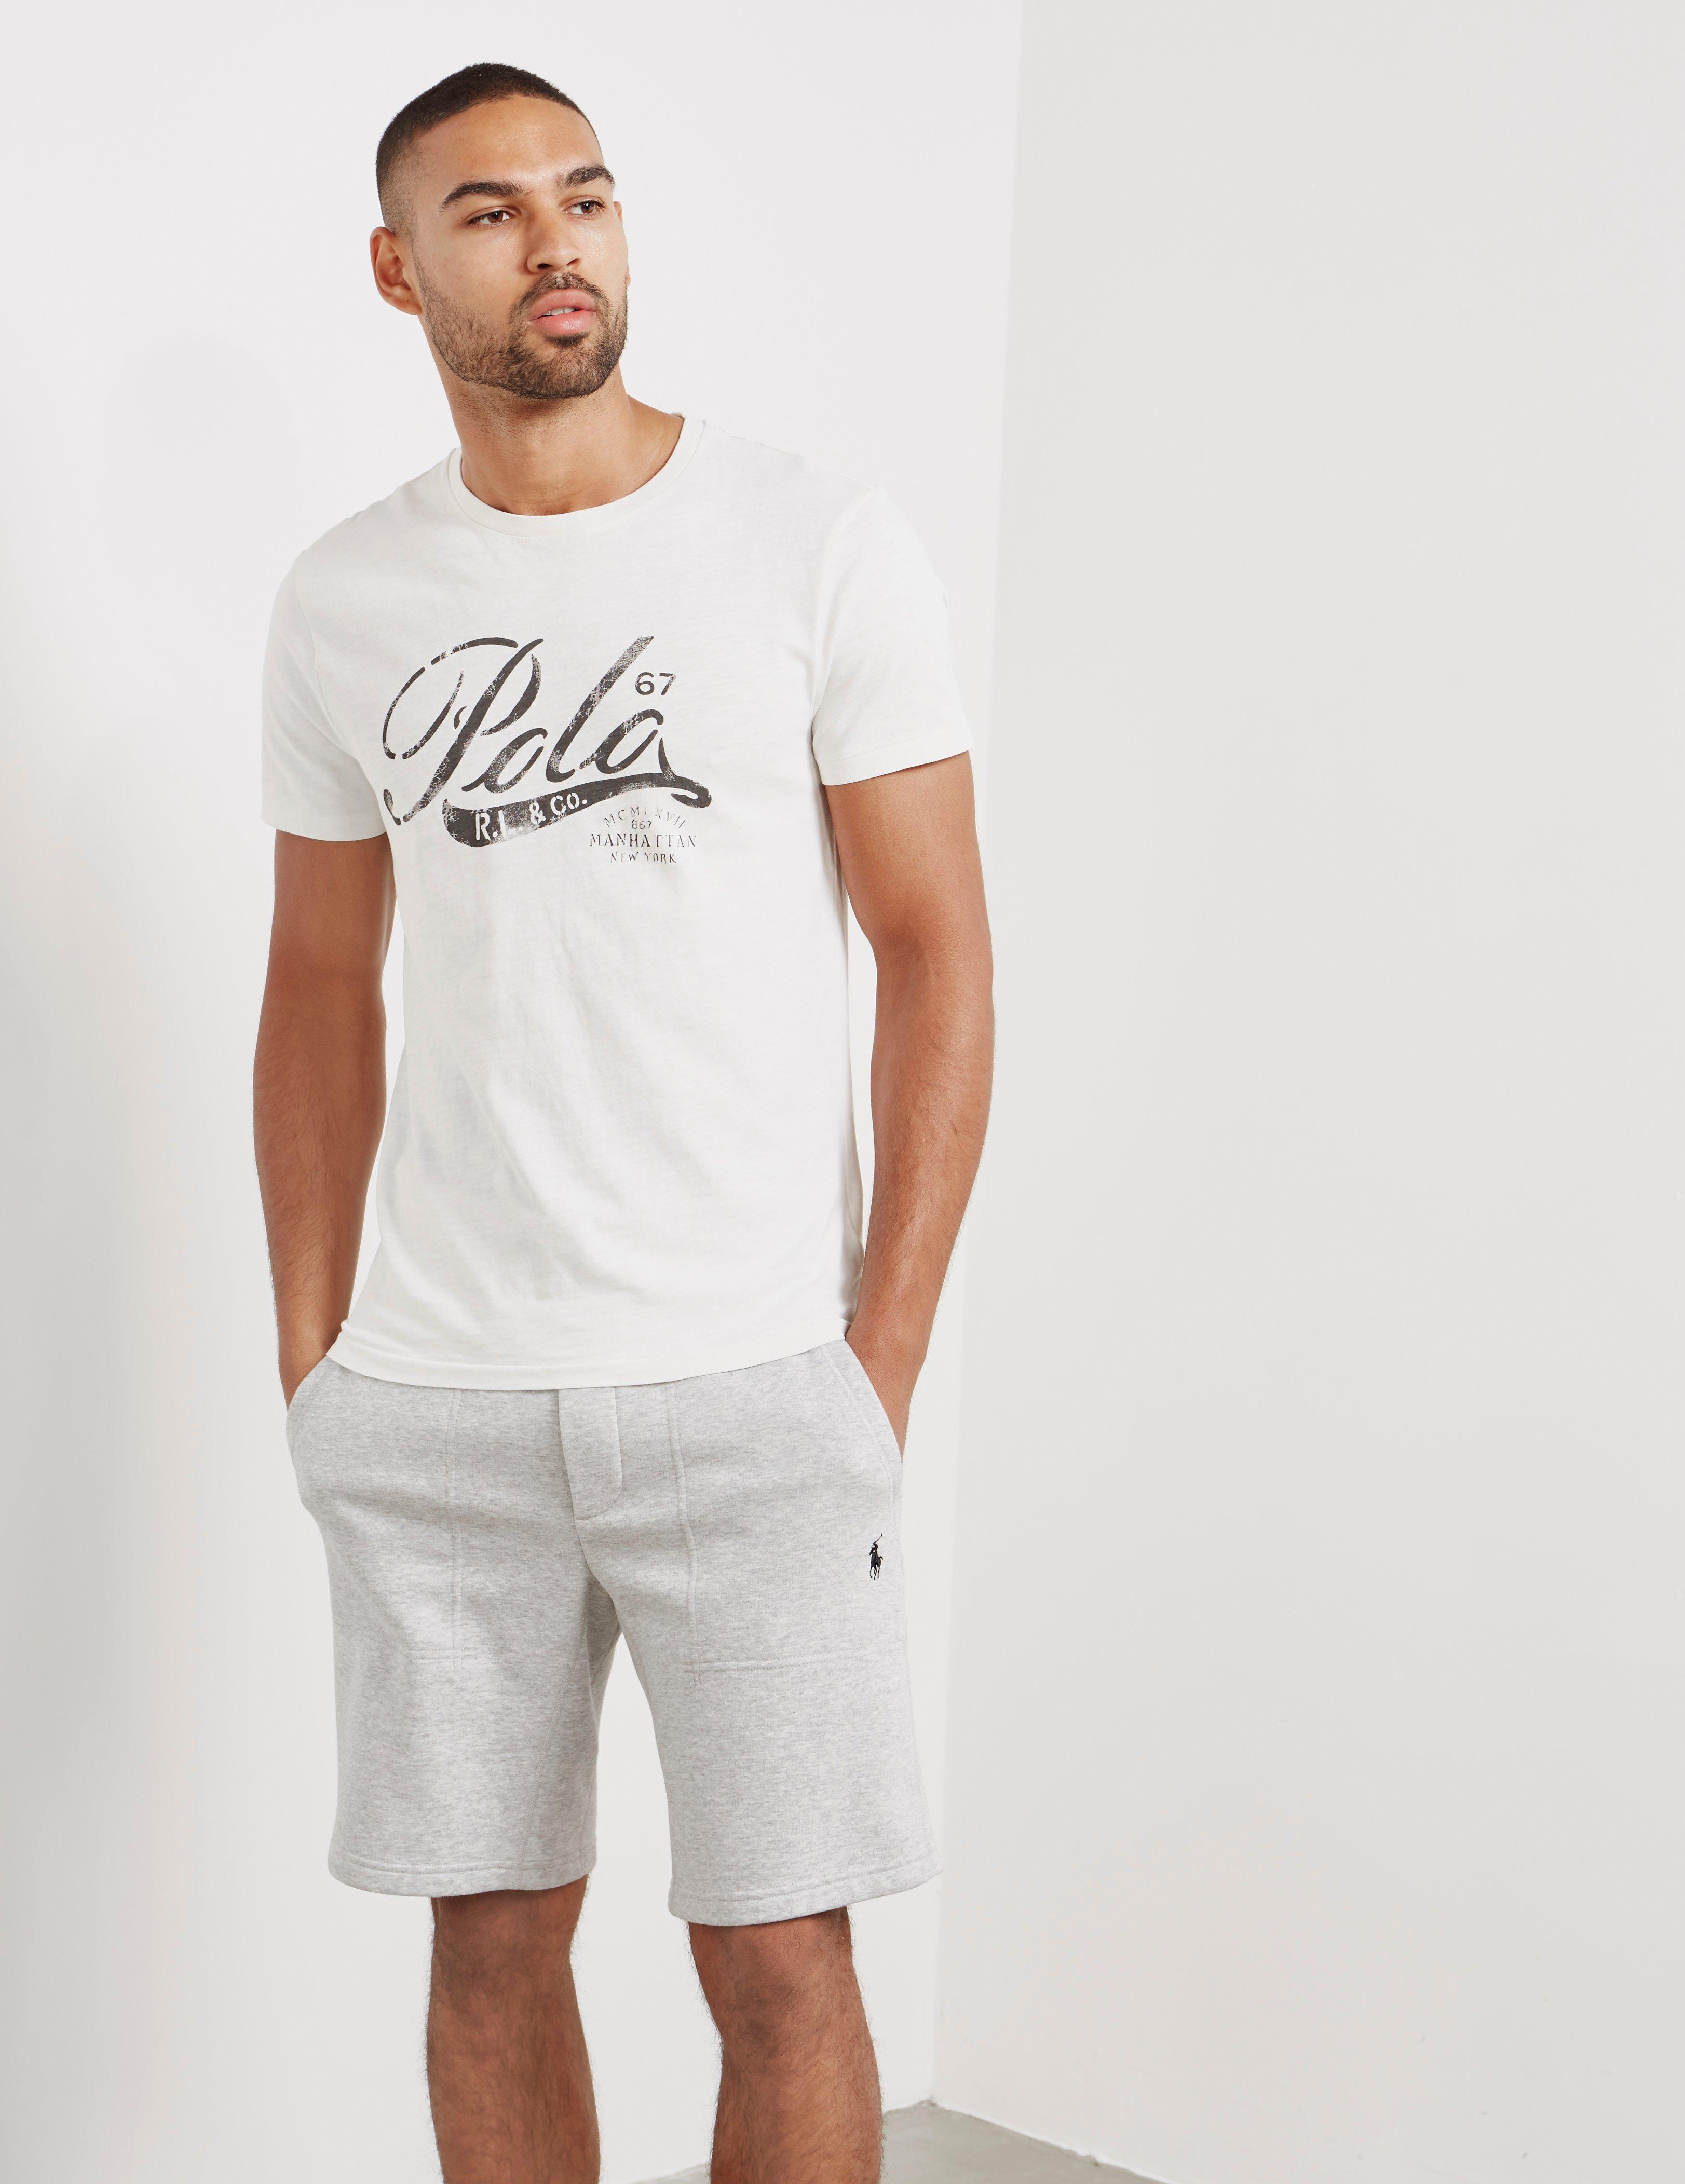 2beed5f9 Lyst - Polo Ralph Lauren Mens Graphic Short Sleeve T-shirt White in ...